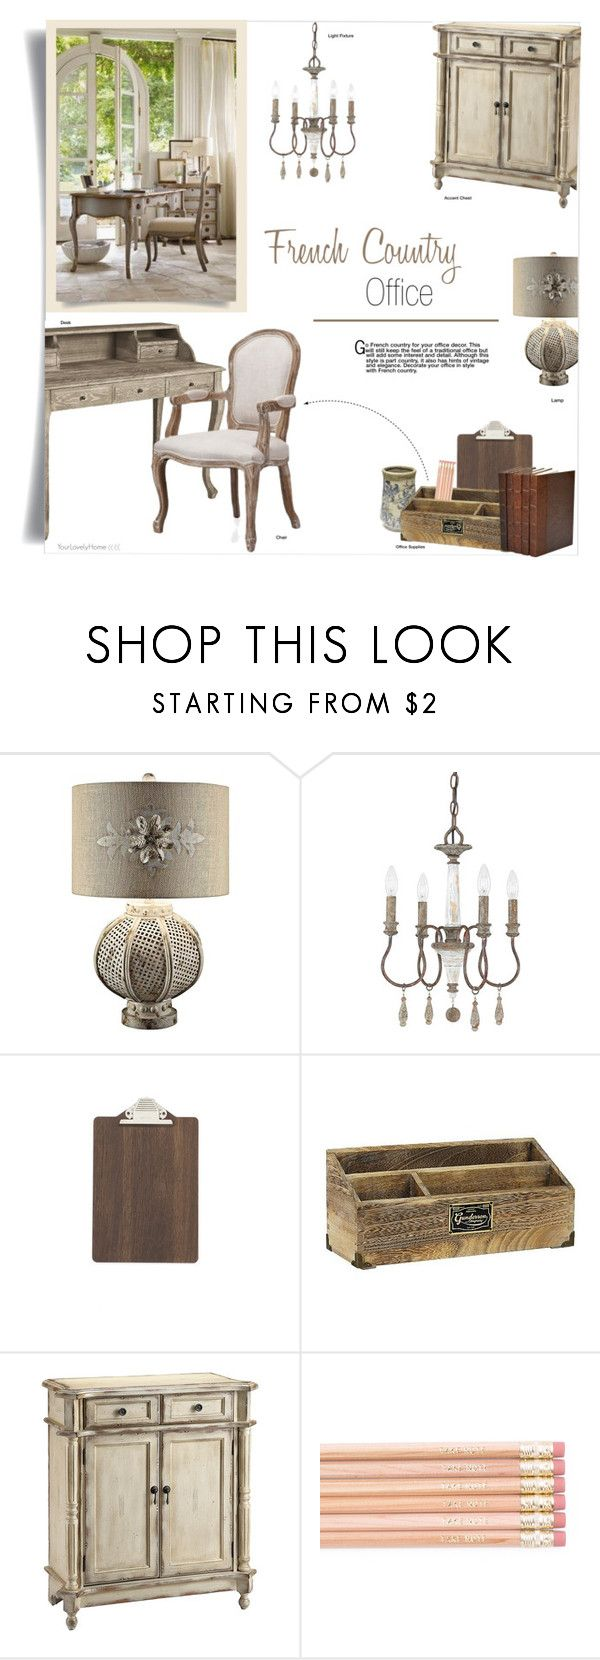 """""""French Country Office"""" by yourlovelyhome ❤ liked on Polyvore featuring interior, interiors, interior design, home, home decor, interior decorating, Crestview Collection, ferm LIVING, Threshold and Stein World"""